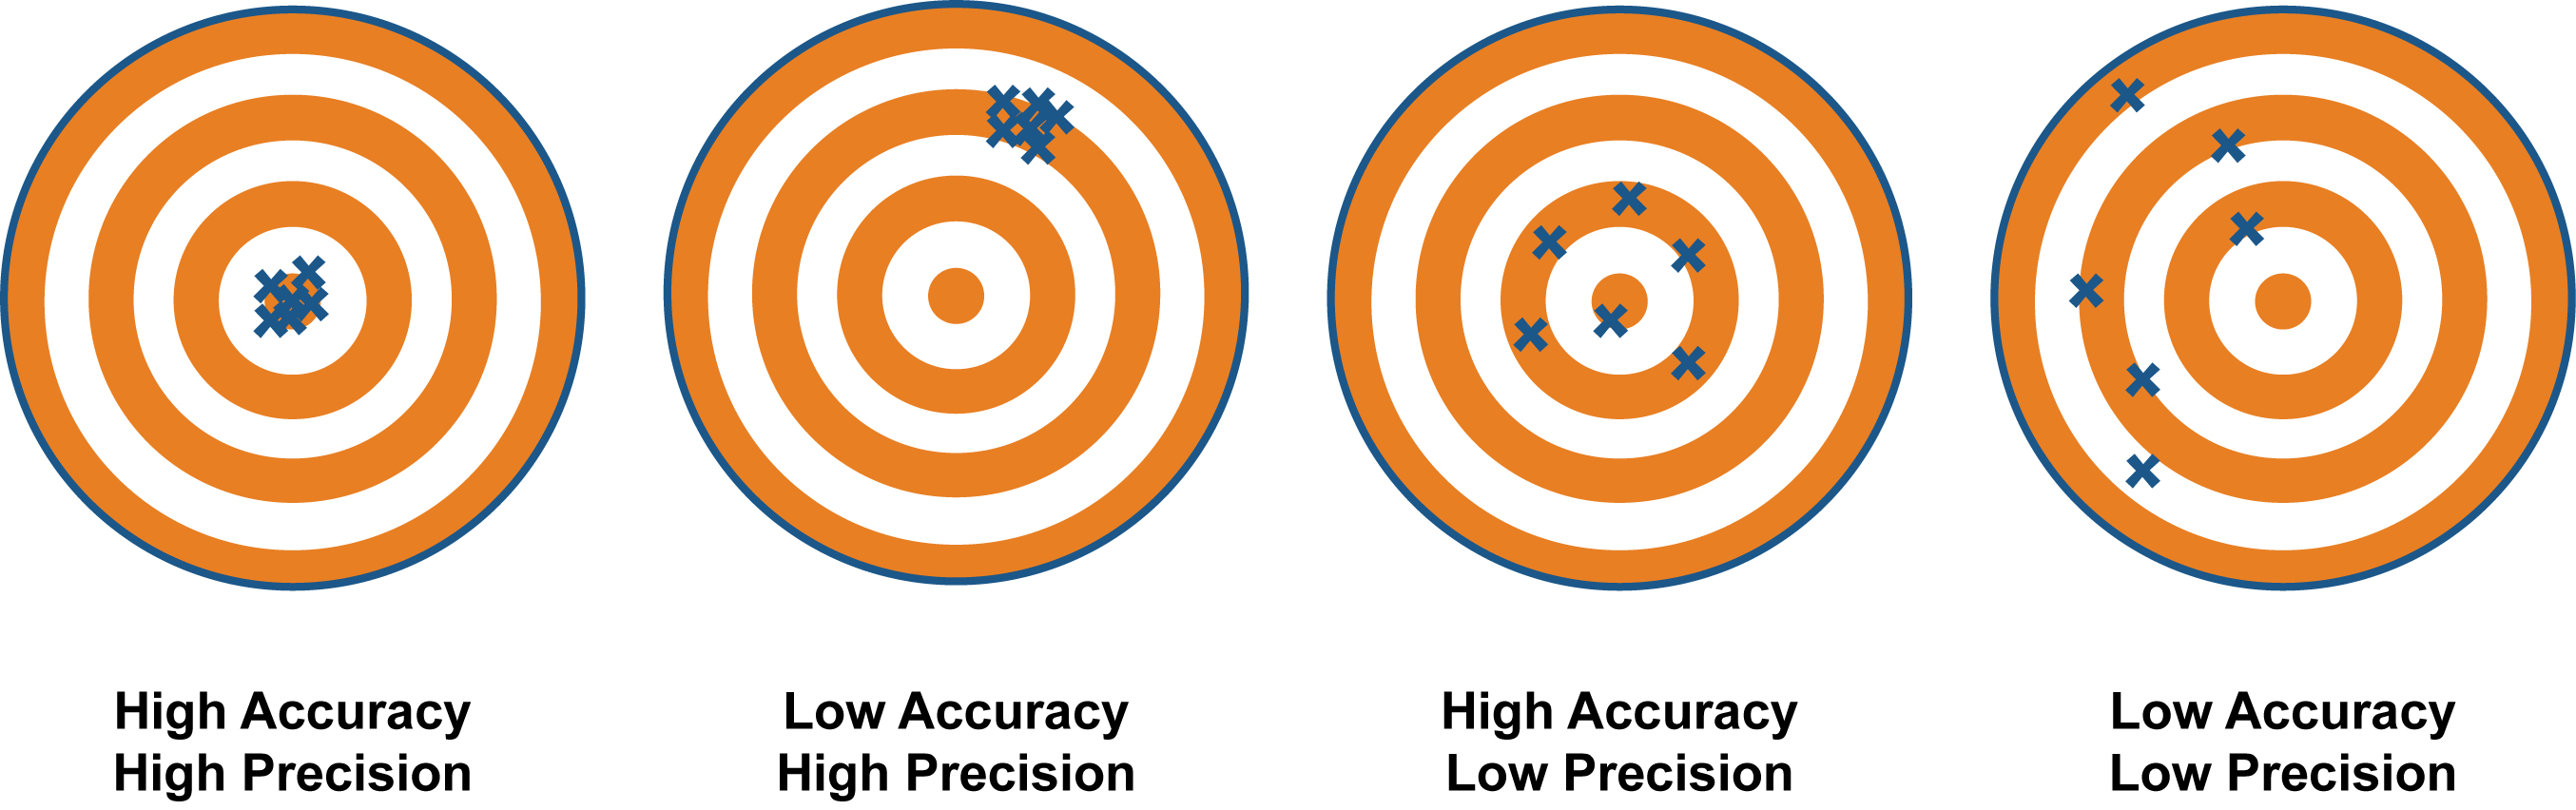 A Bad Hypothesis Can Lead To Low Accuracy But High Precision I Copied You